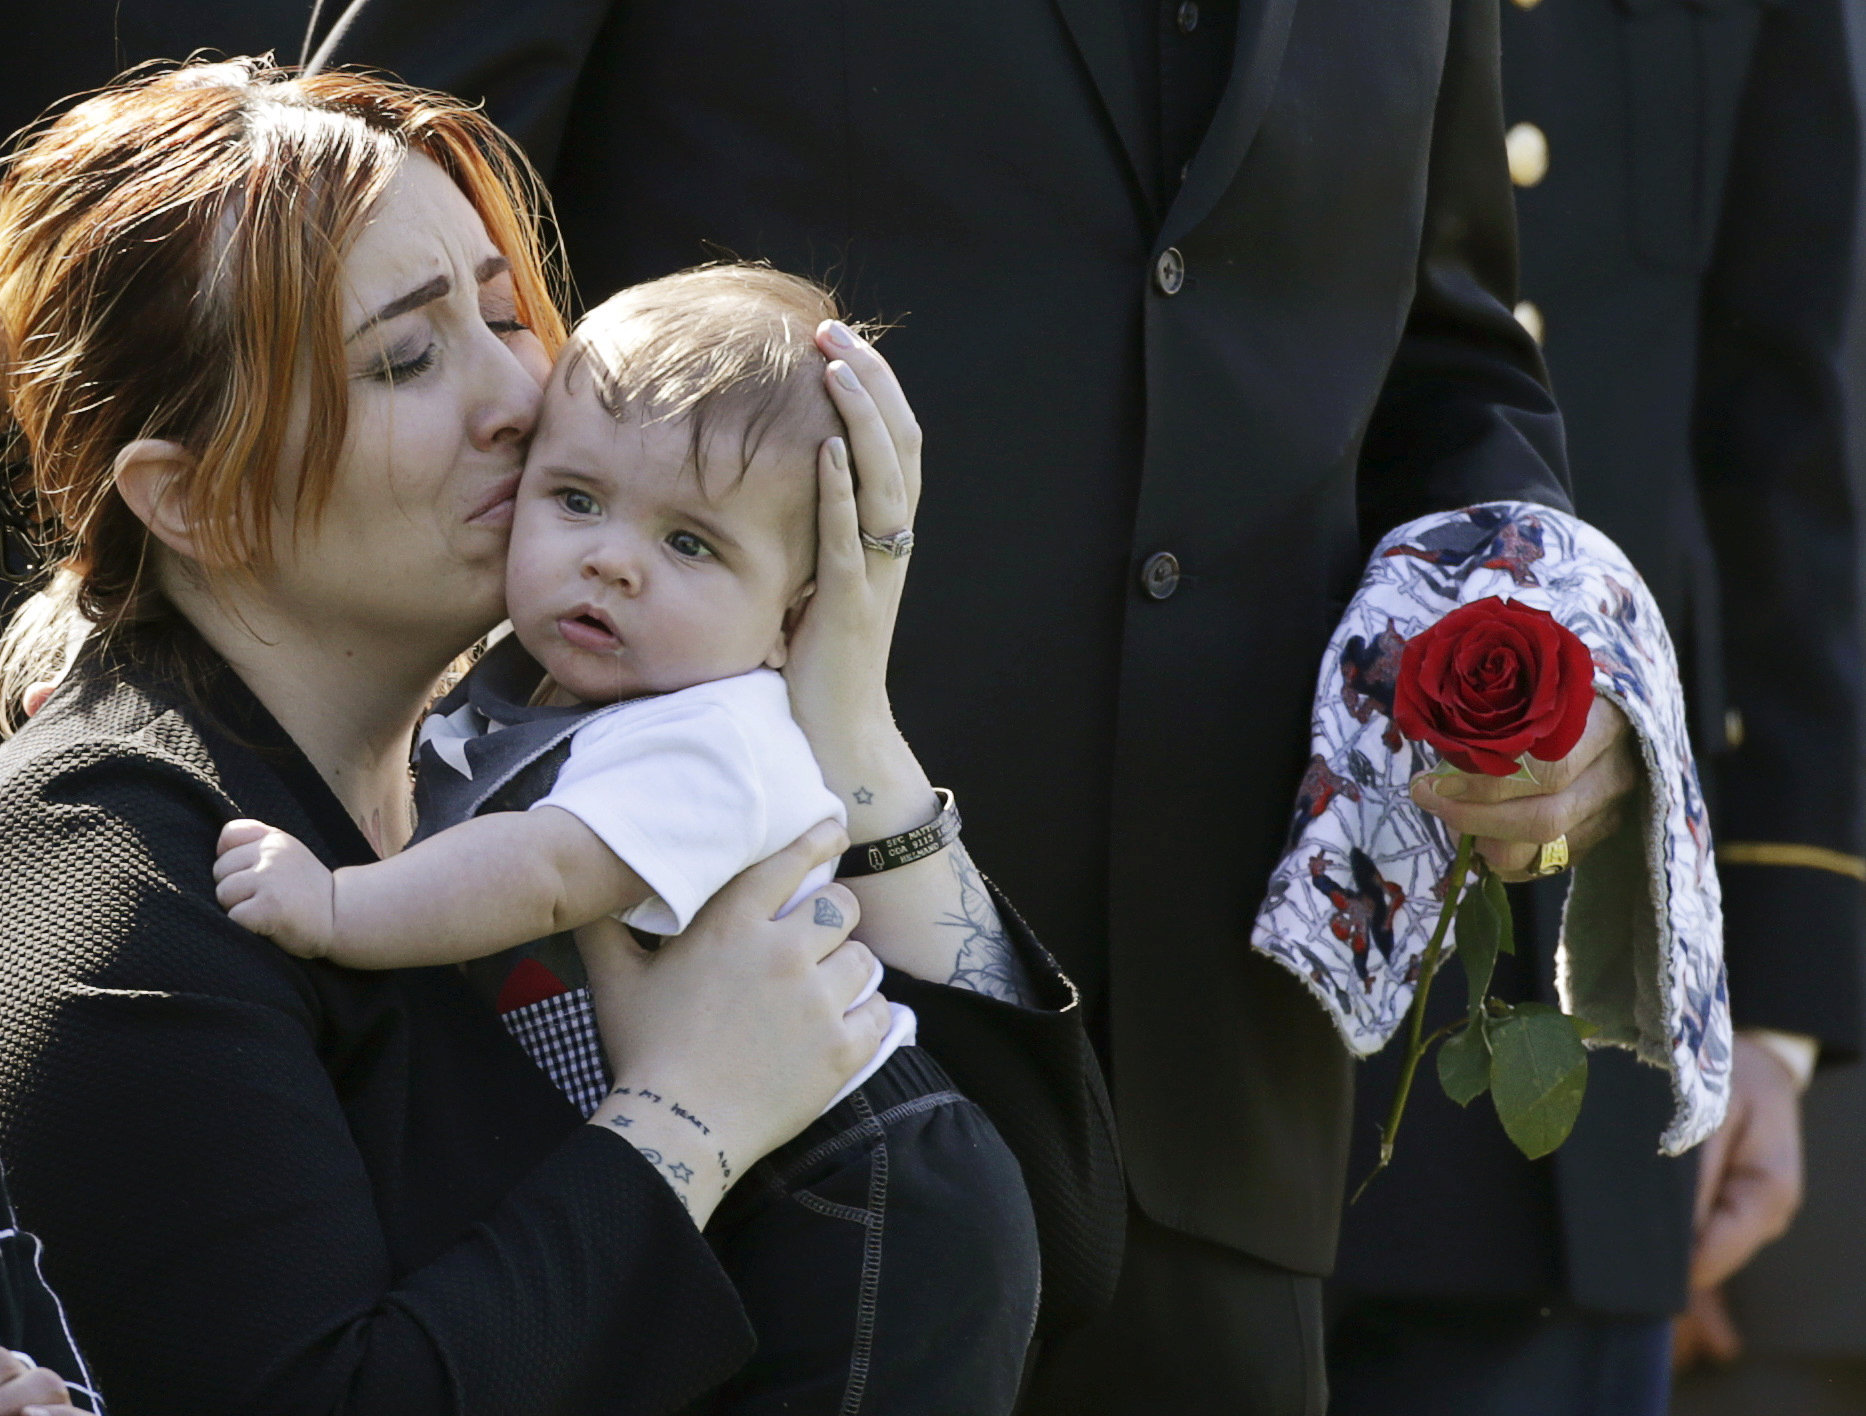 FILE PHOTO: Widow Alexandra McClintock holds her son Declan during a burial service for her husband, U.S. Army Sergeant First Class Matthew McClintock, who was killed in action in January at Arlington National Cemetery in Virginia March 7, 2016. REUTERS/Gary Cameron/File Photo